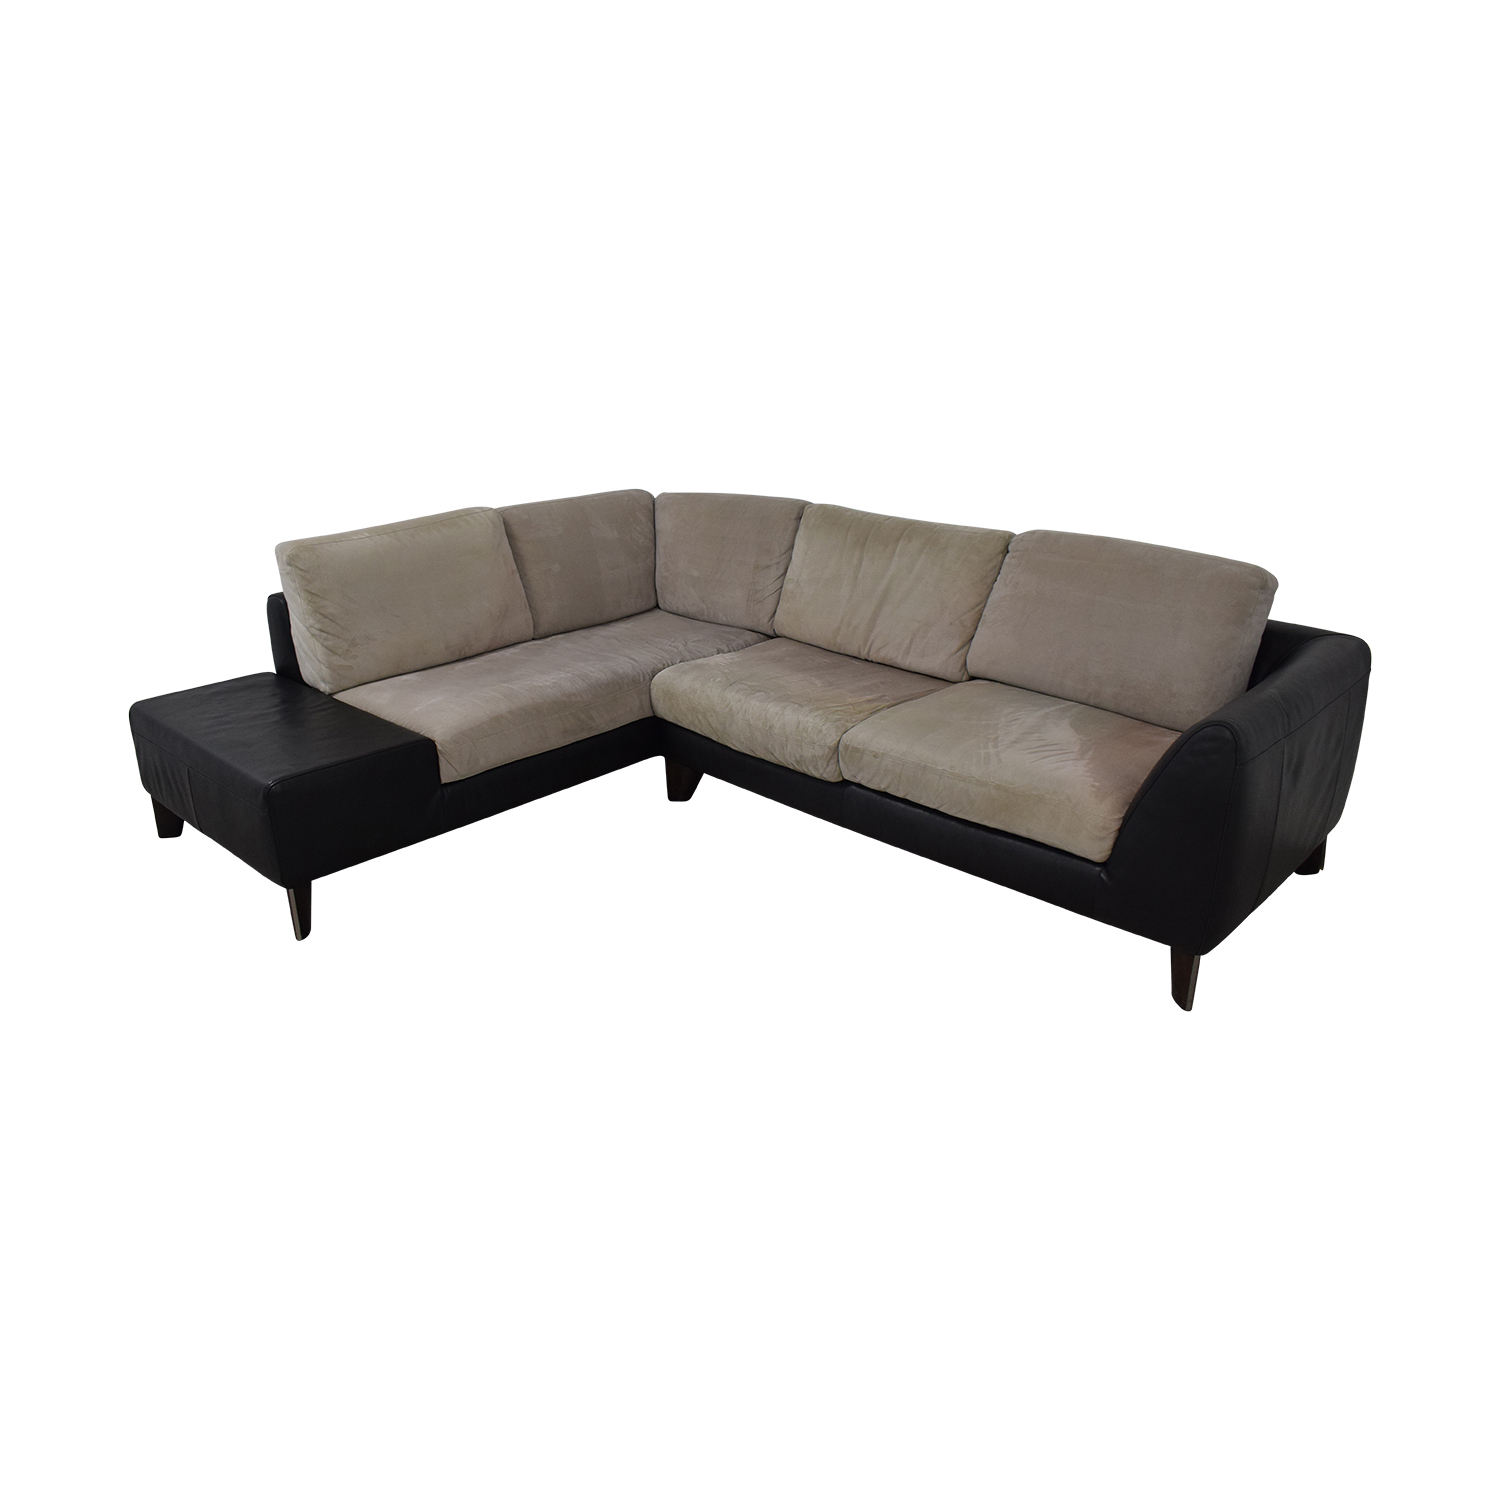 buy  Italsofa Two-Piece Sectional Sofa online